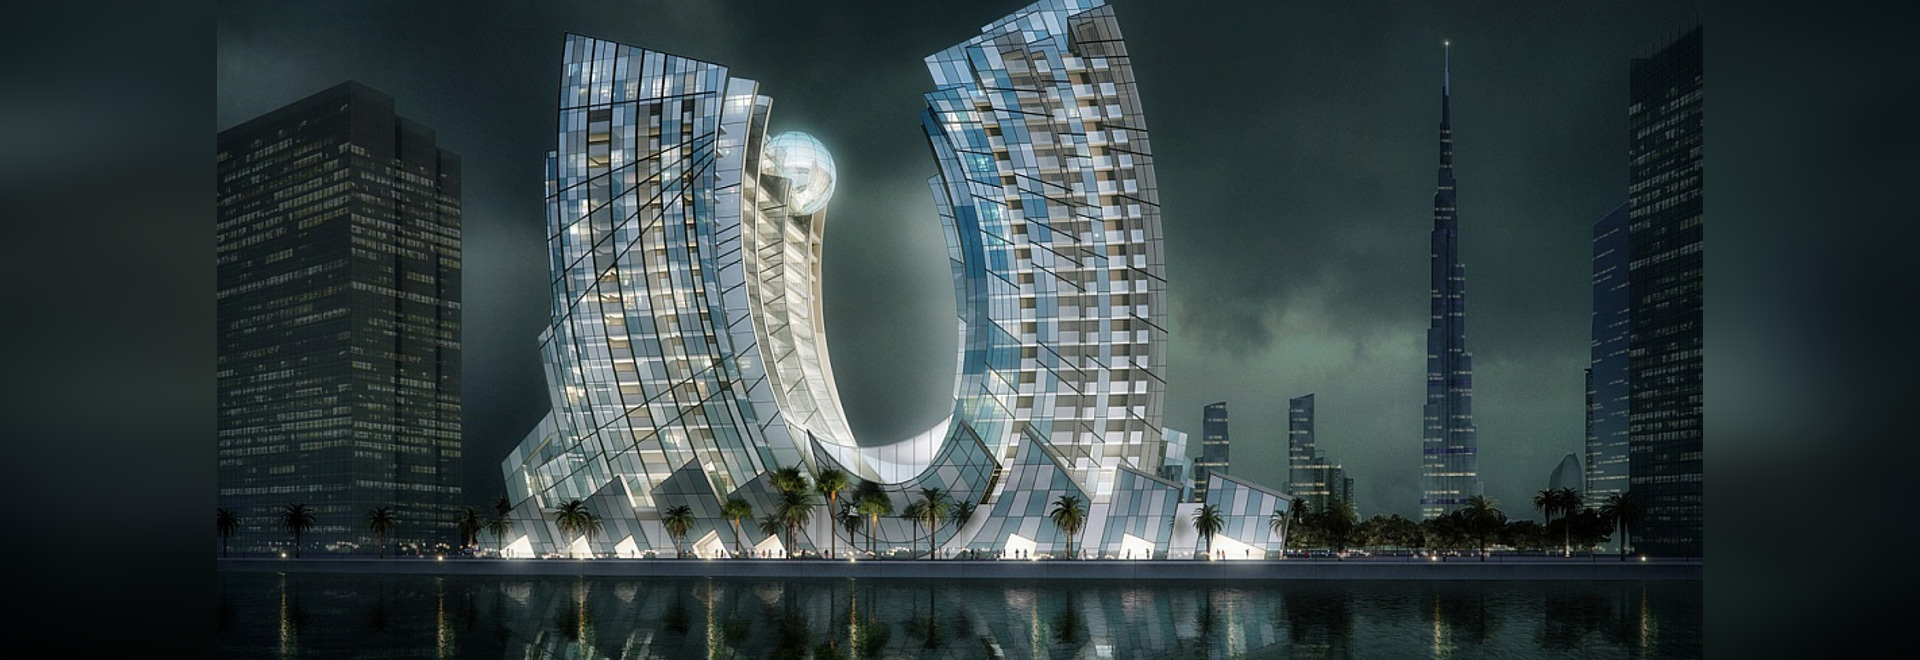 "J One, ""The Jewel of Dubai"". Courtesy of RKM Durar"